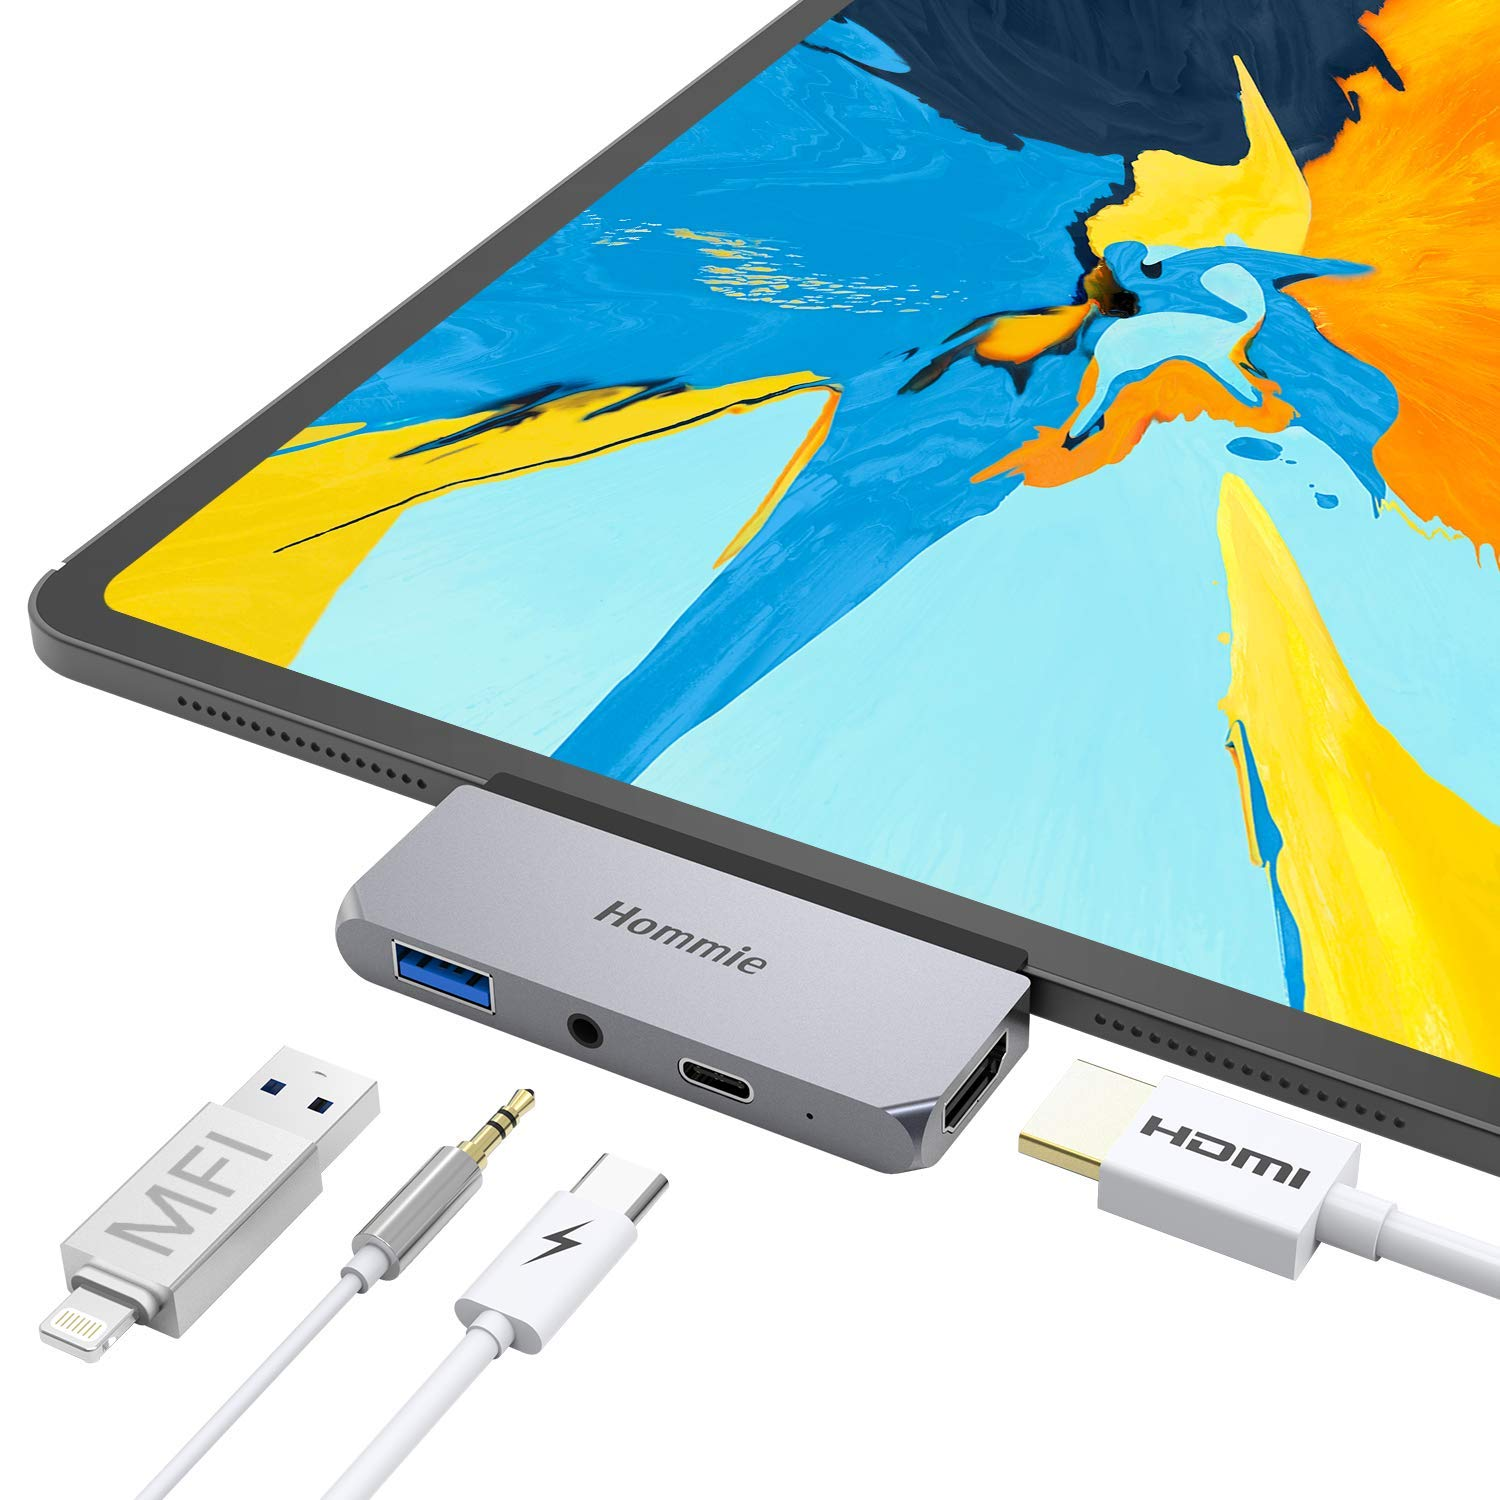 Hommie USB Type-C Hub for iPad Pro 2020 2018 and MacBook Pro, USB C Hub Adapter with USB-C PD Charging, 4K HDMI, USB 3.0 & 3.5 mm Headphone Jack, Space Gray